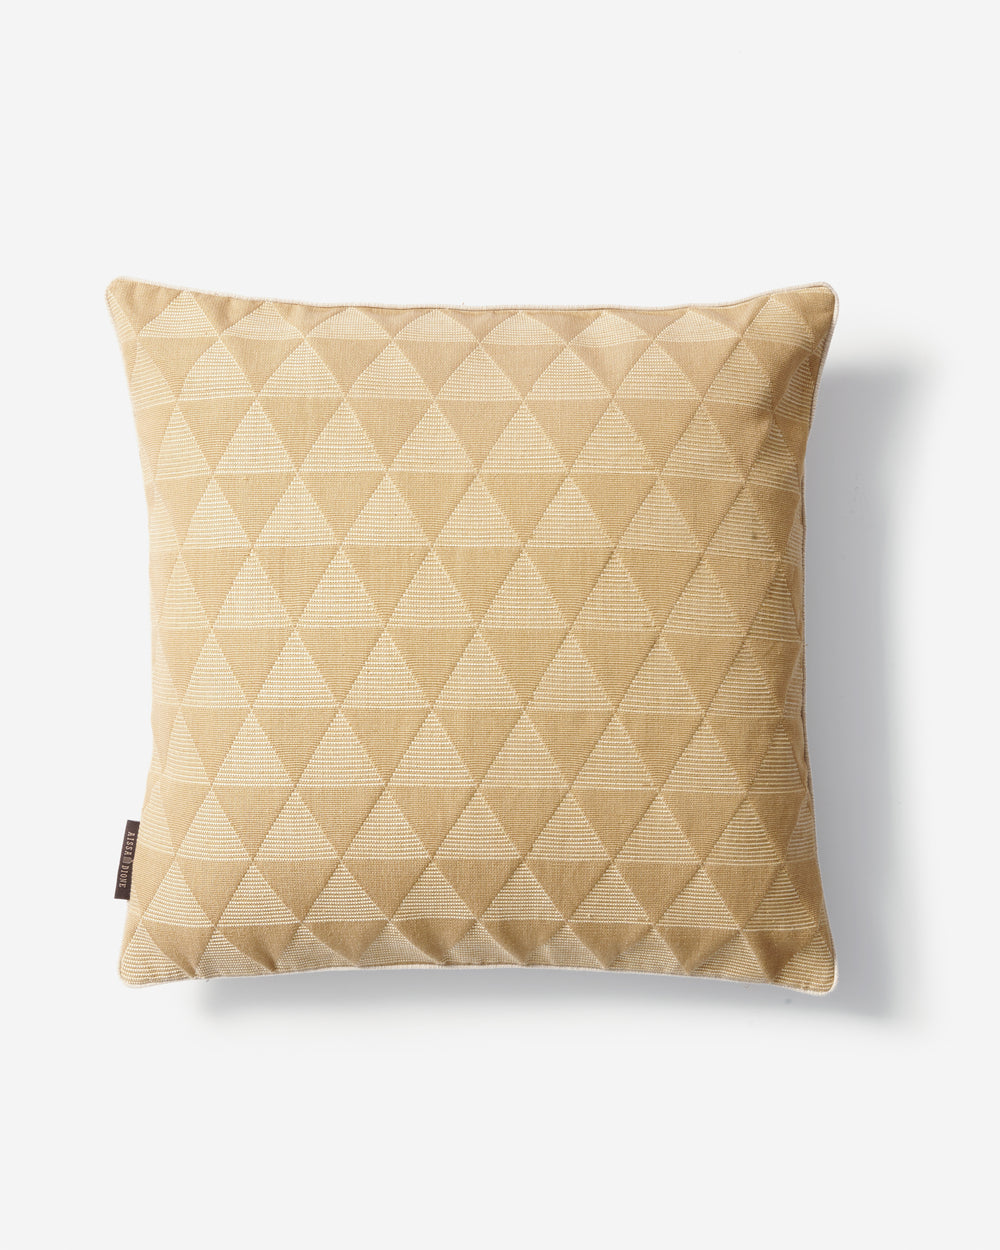 Luxury Hand-Woven Cushion – Kameroun Beige